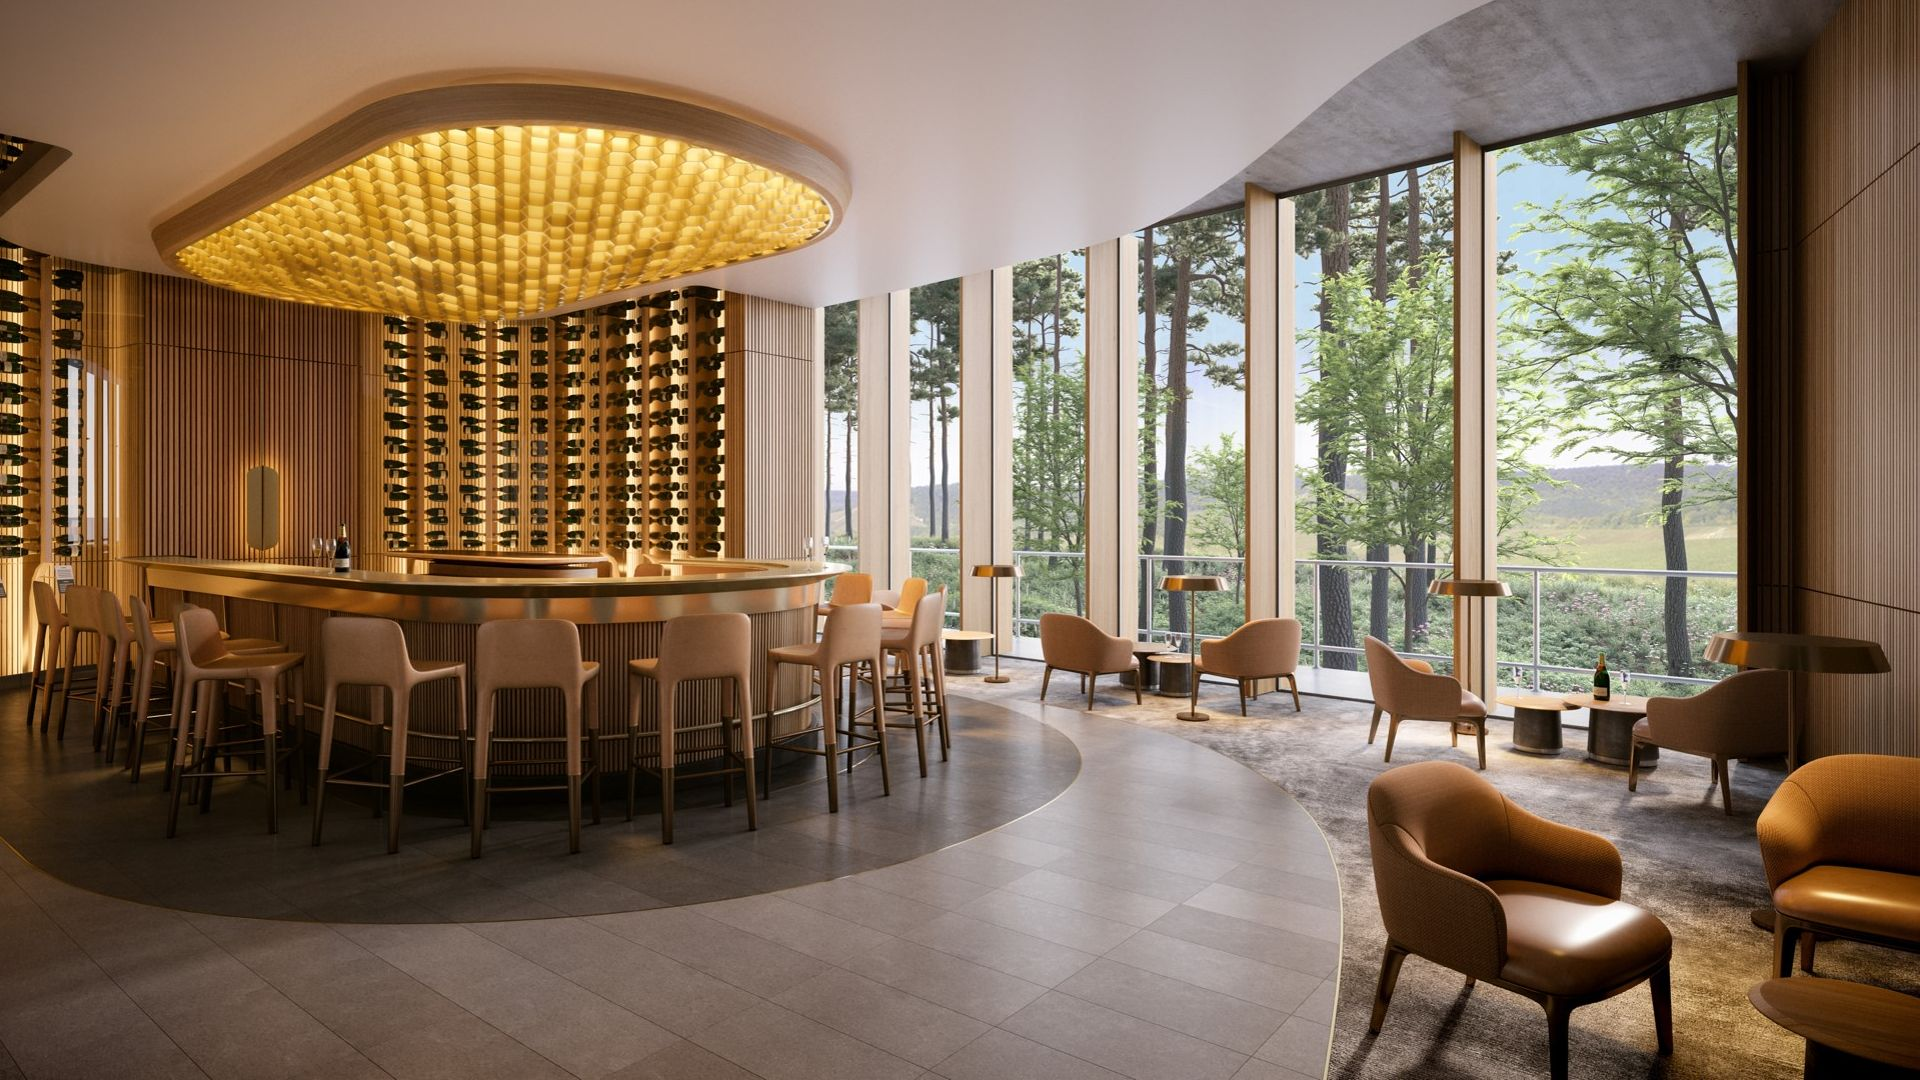 Mutigny Resort Hotel has raised funds to construct a new 4-star hotel in Champagne